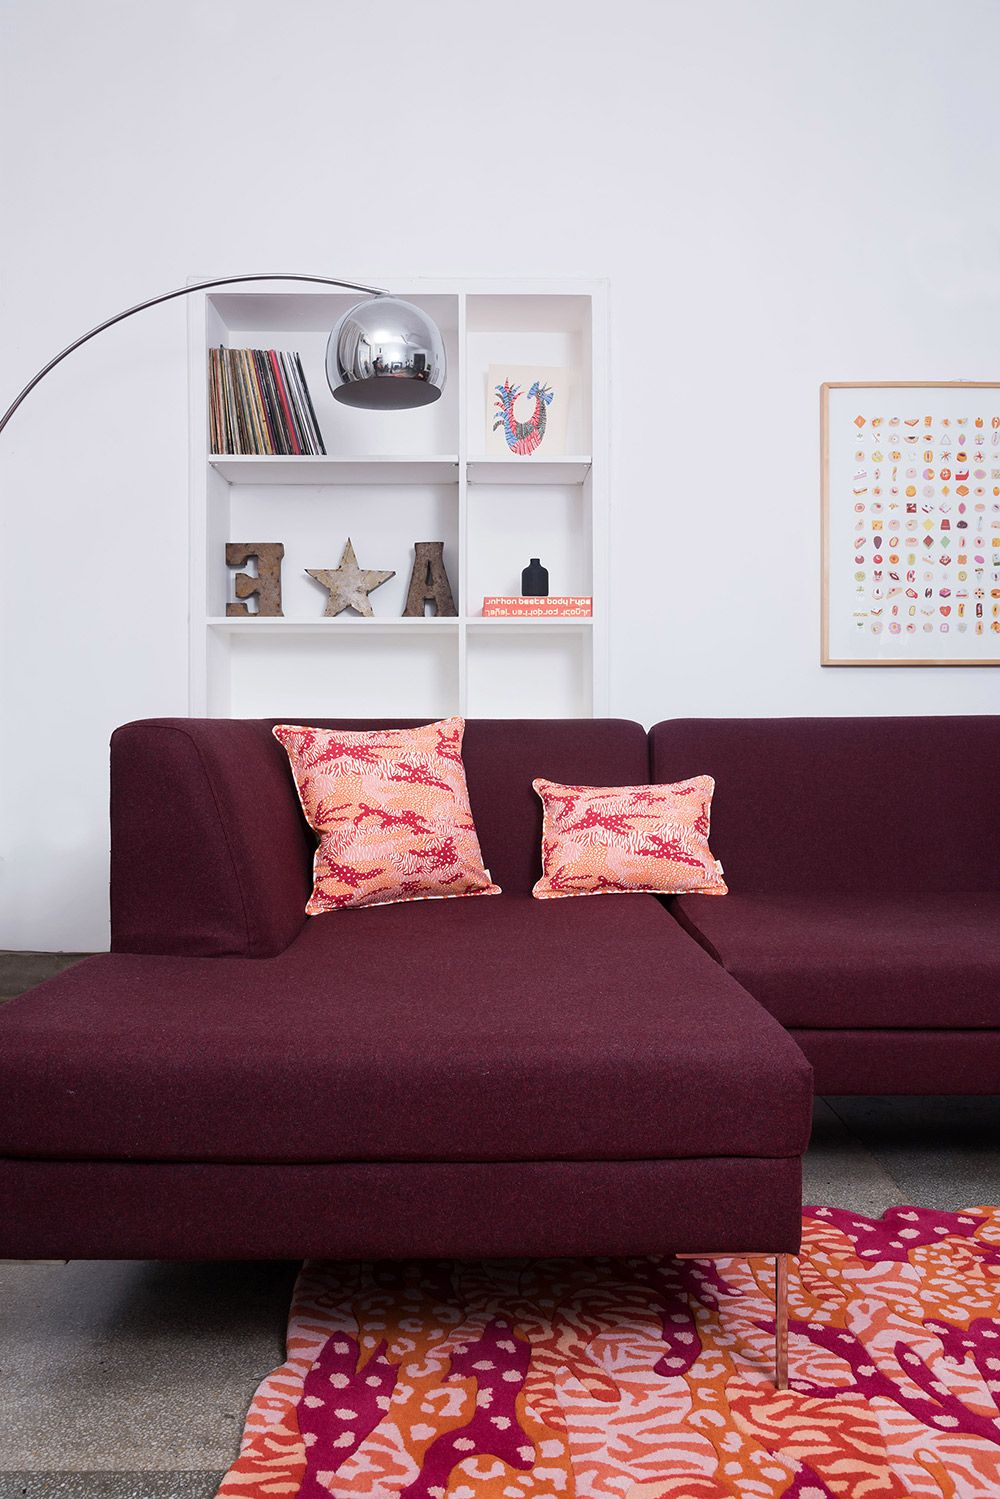 Big Sofa Safari Go Wild With Print And Pattern With Our Safari Inspired Interiors